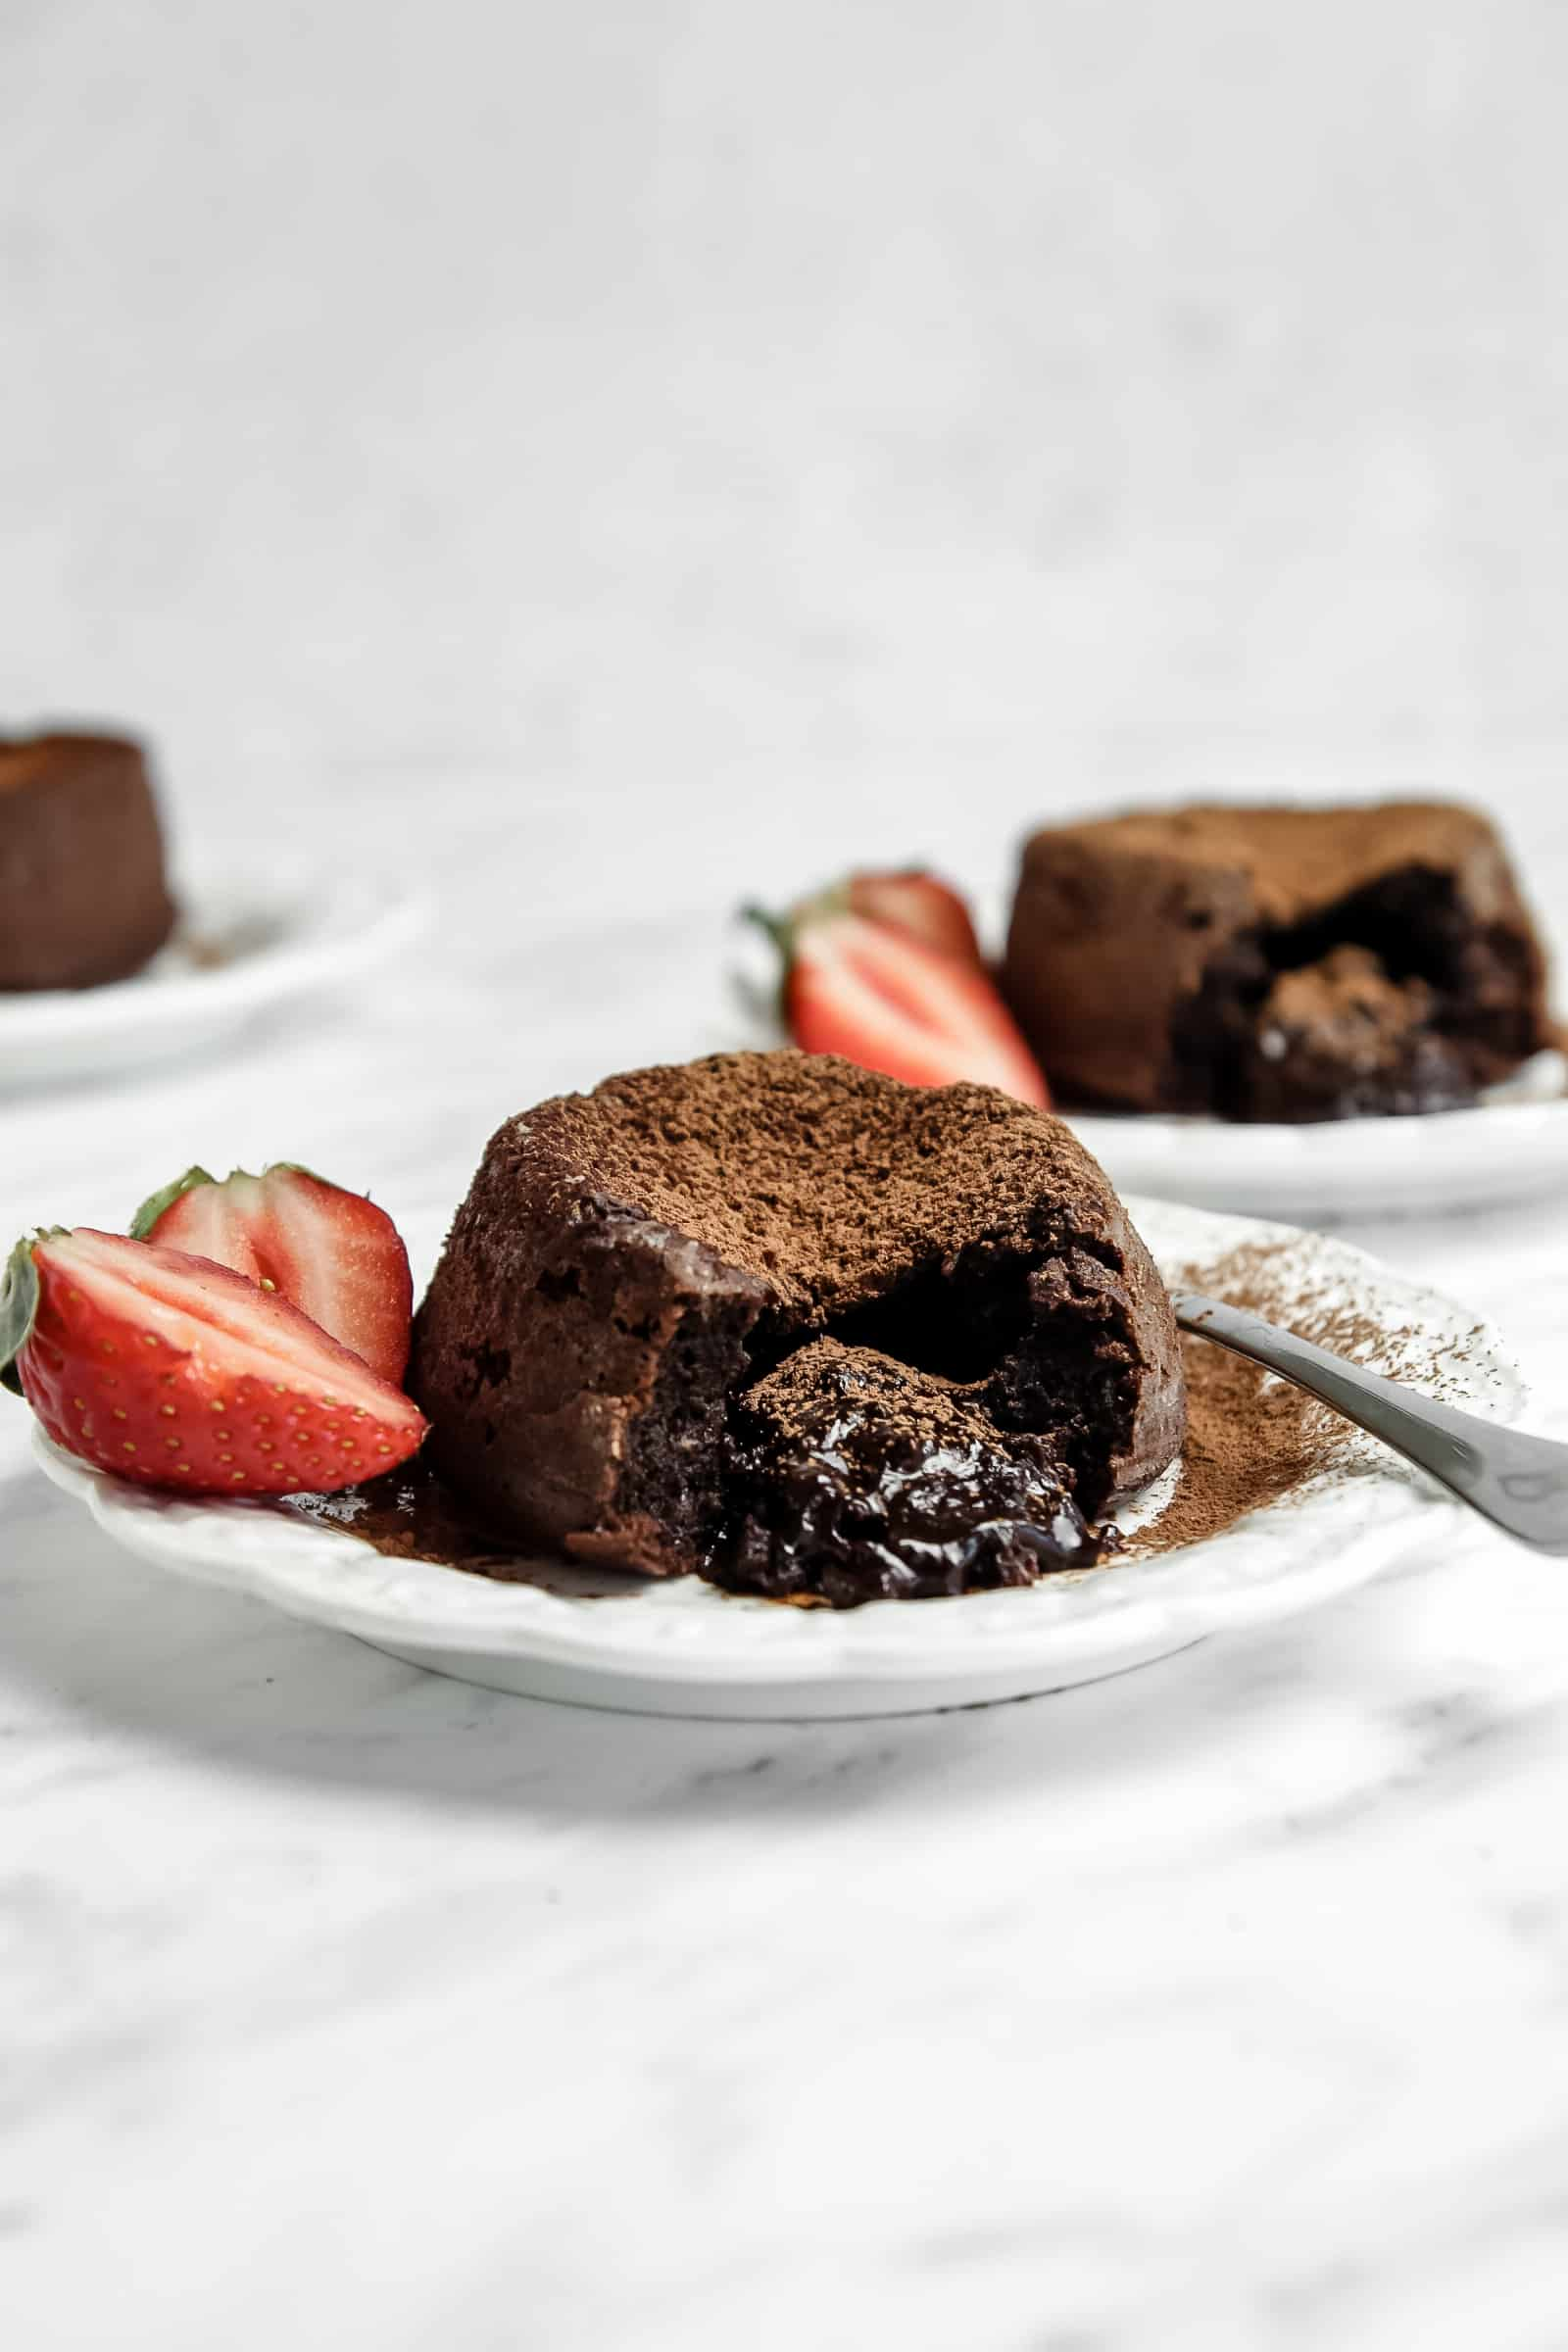 Molten chocolate cake with center oozing out